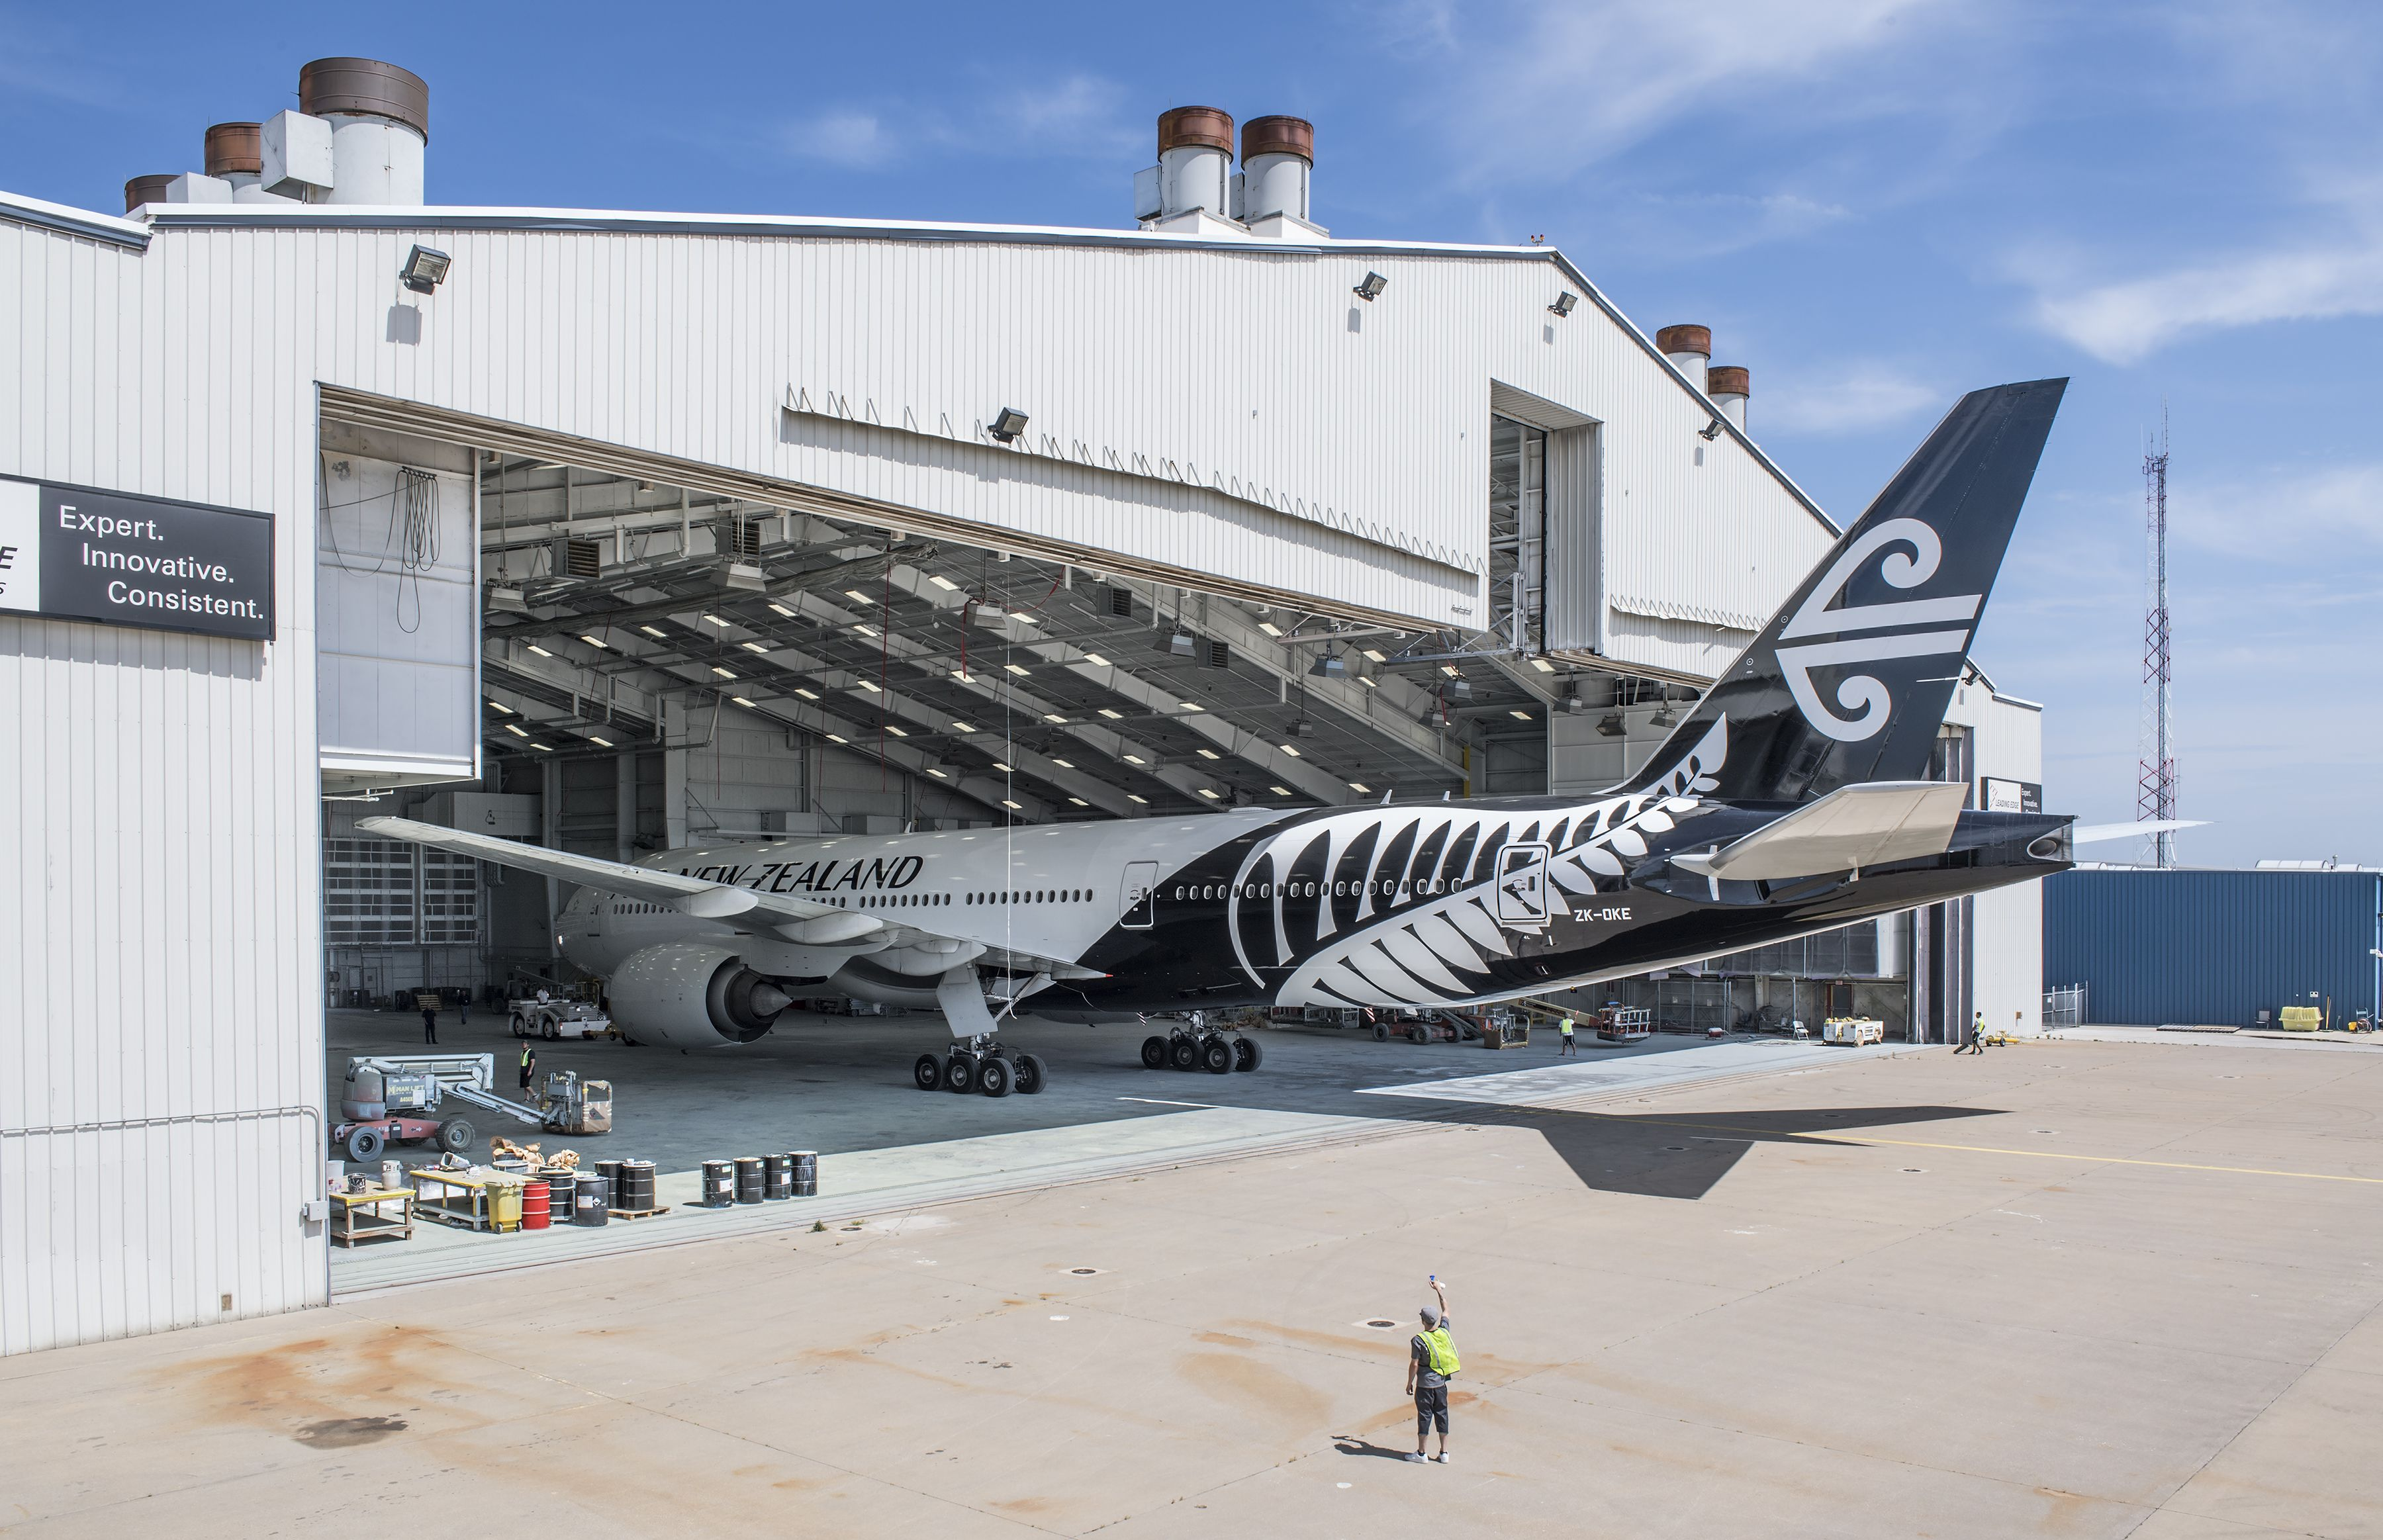 Air New Zealand Boeing 777 Painted In Fort Worth Texas At Meacham